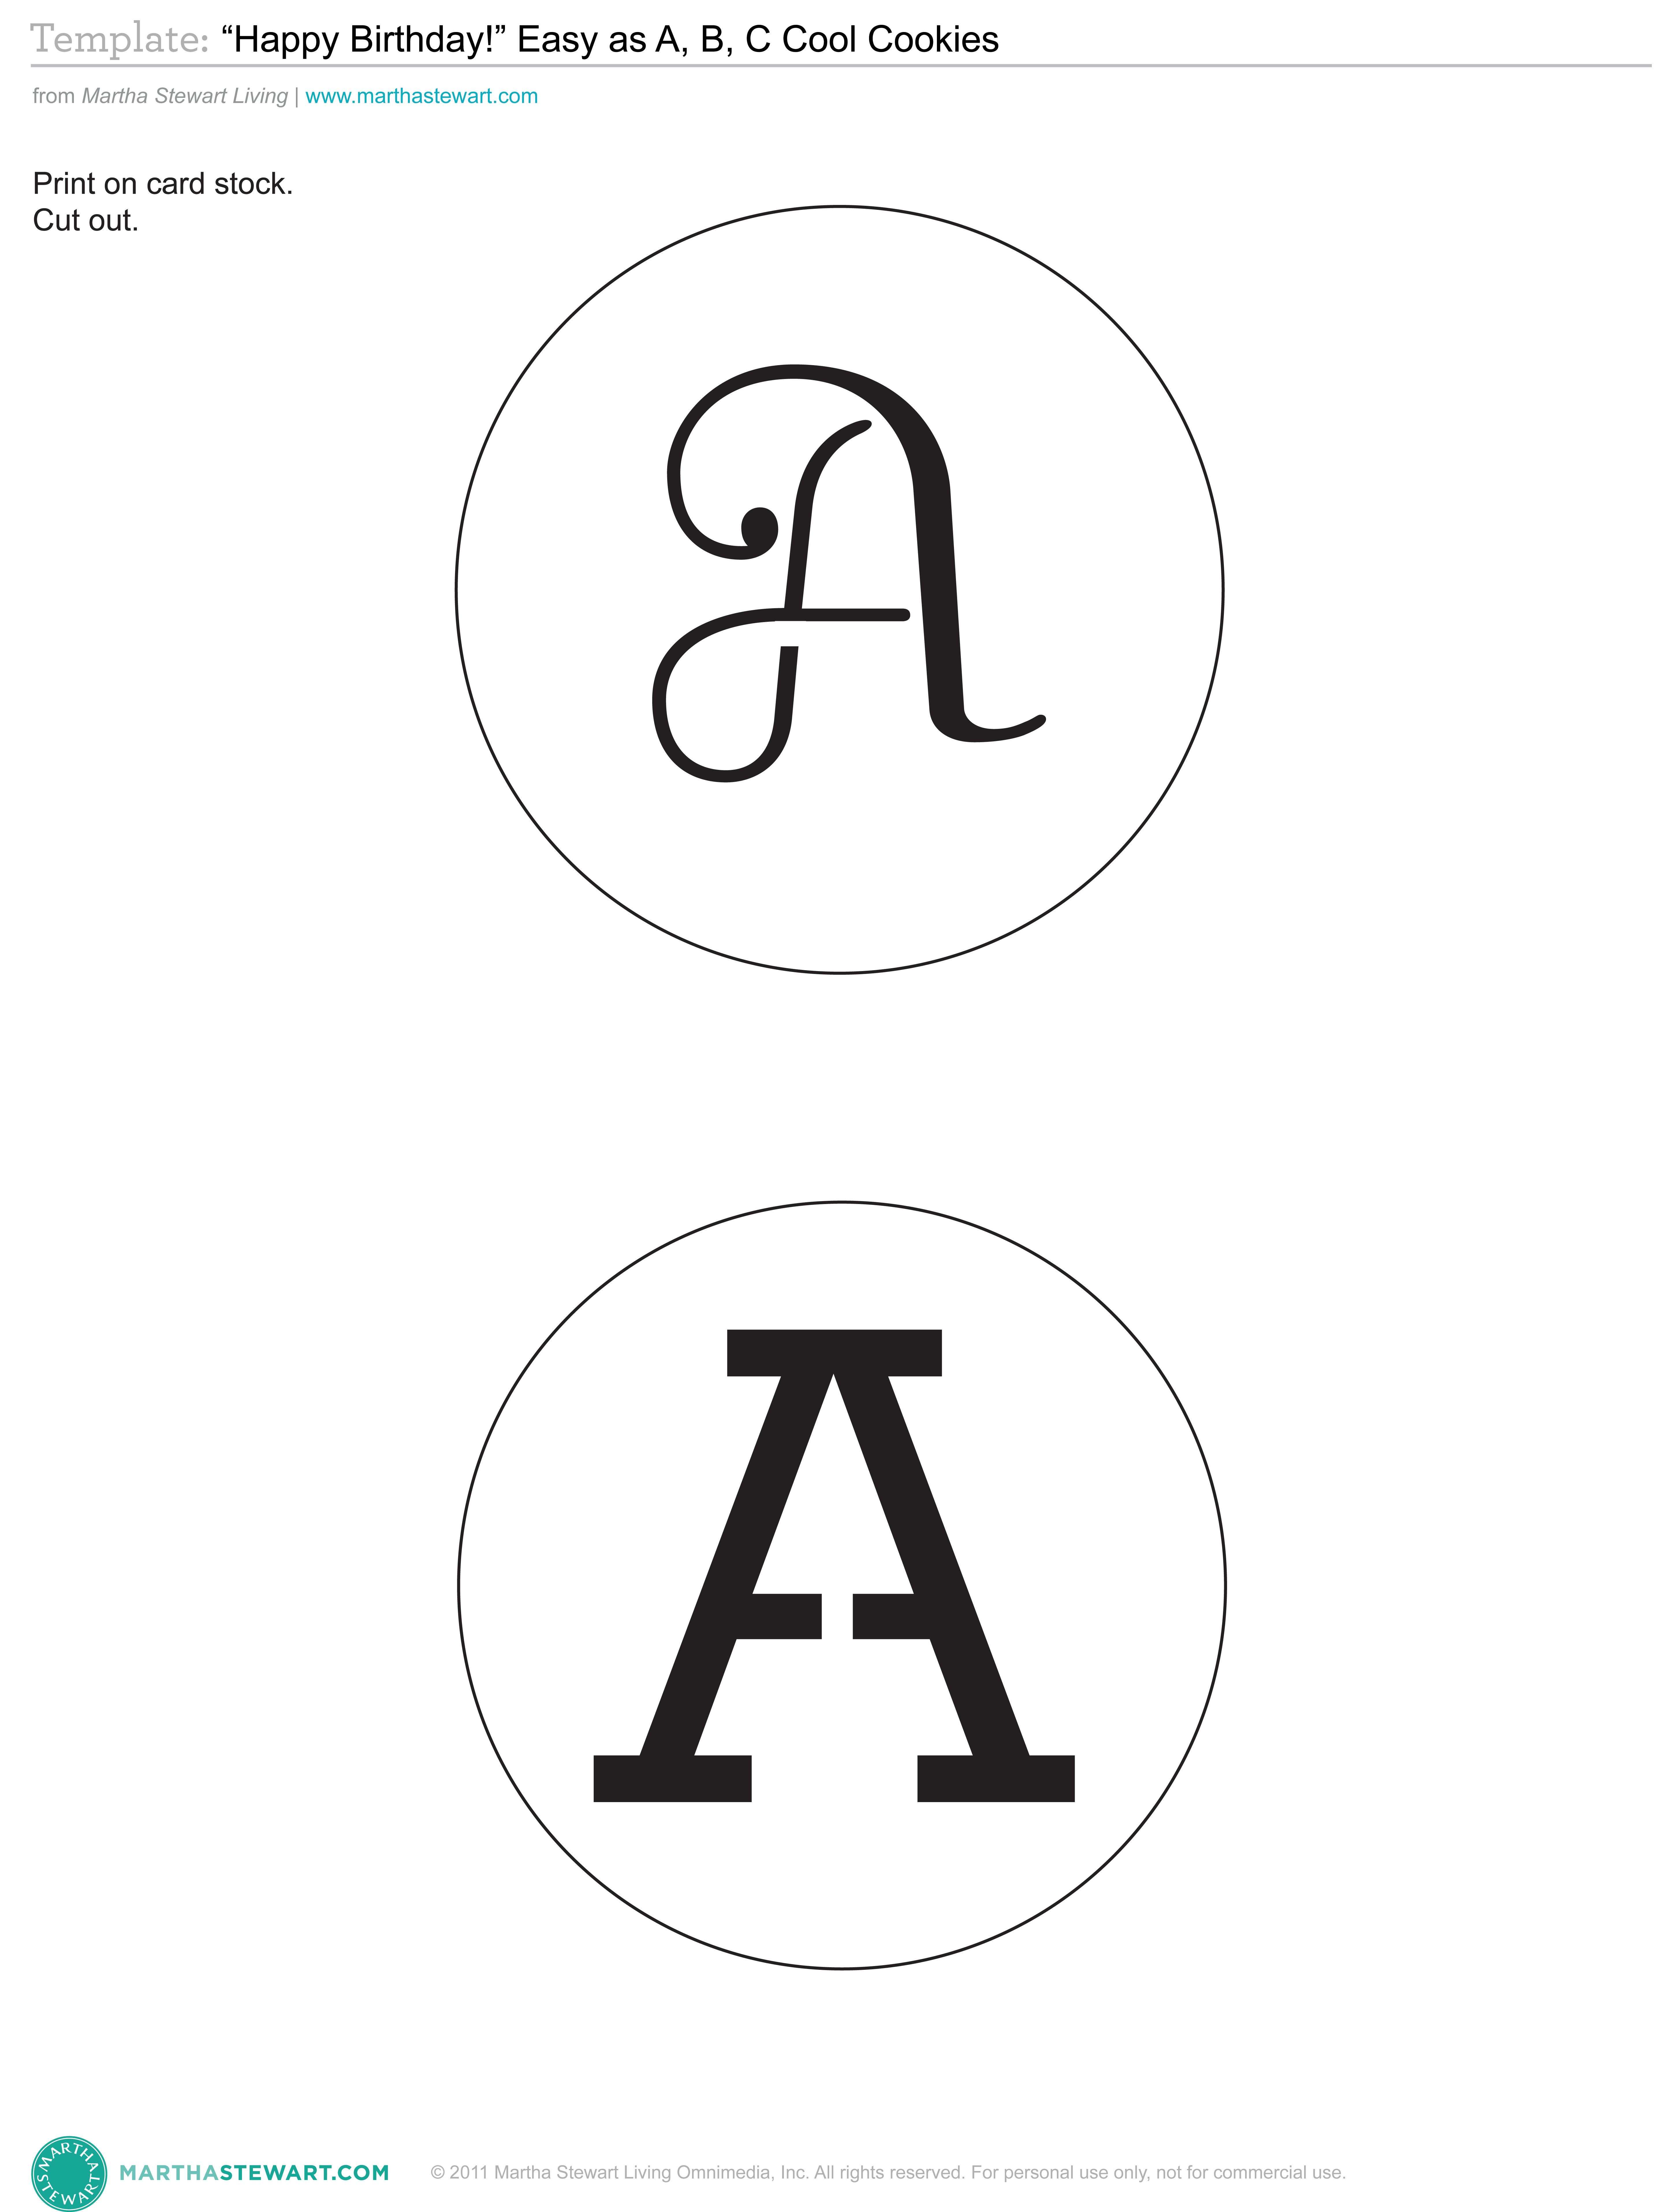 A z alphabet stencil template or graphics from martha stewart a z alphabet stencil template or graphics from martha stewart http spiritdancerdesigns Image collections